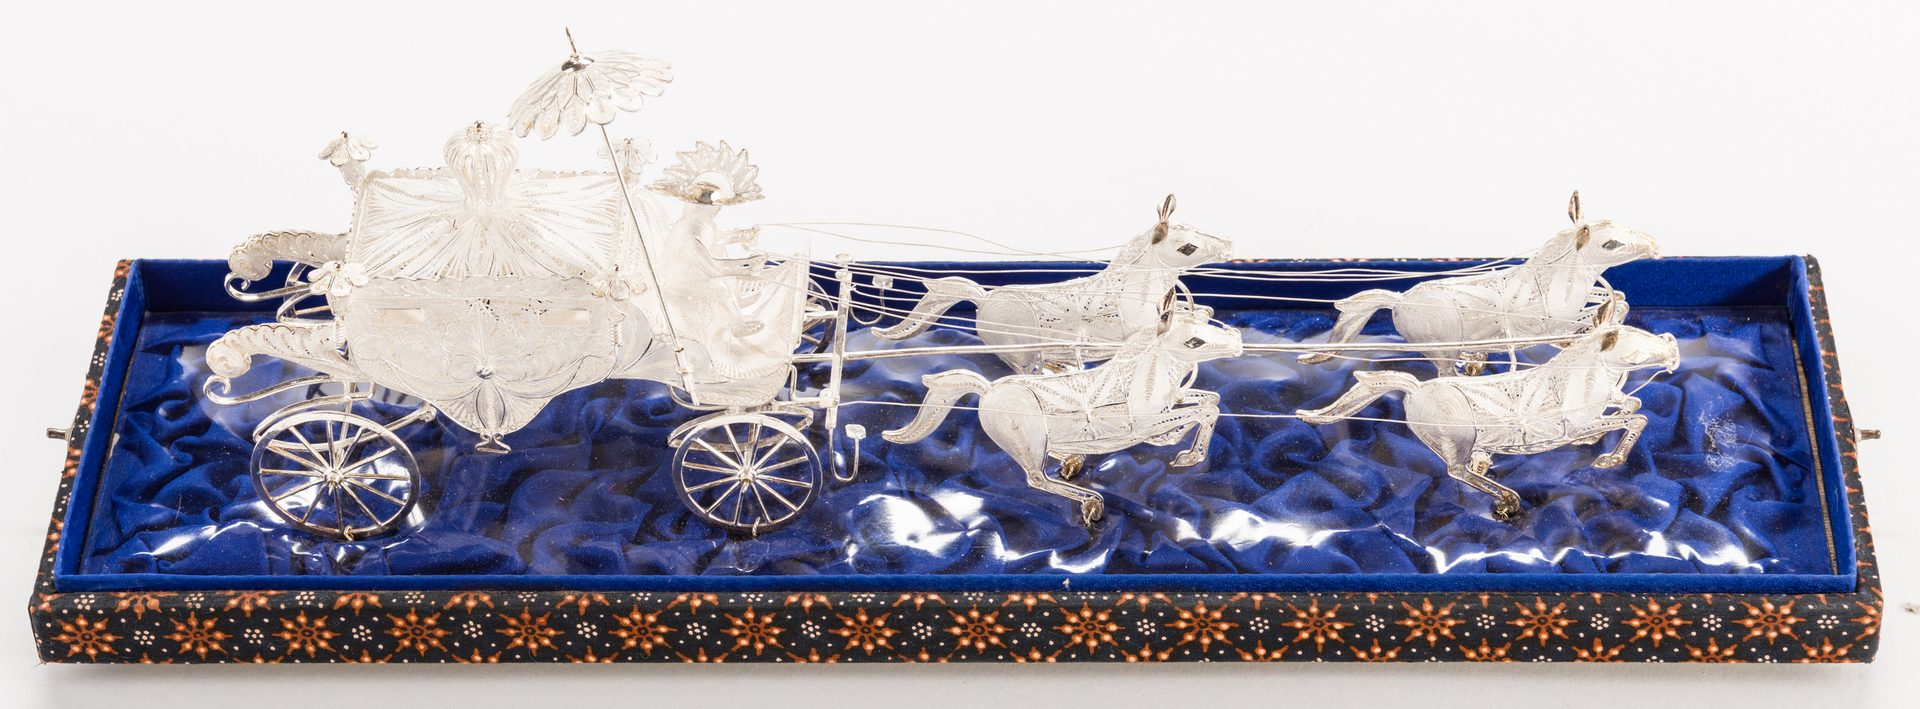 Lot 659: Indonesian or Asian Silver Filigree Carriage w/ Horses